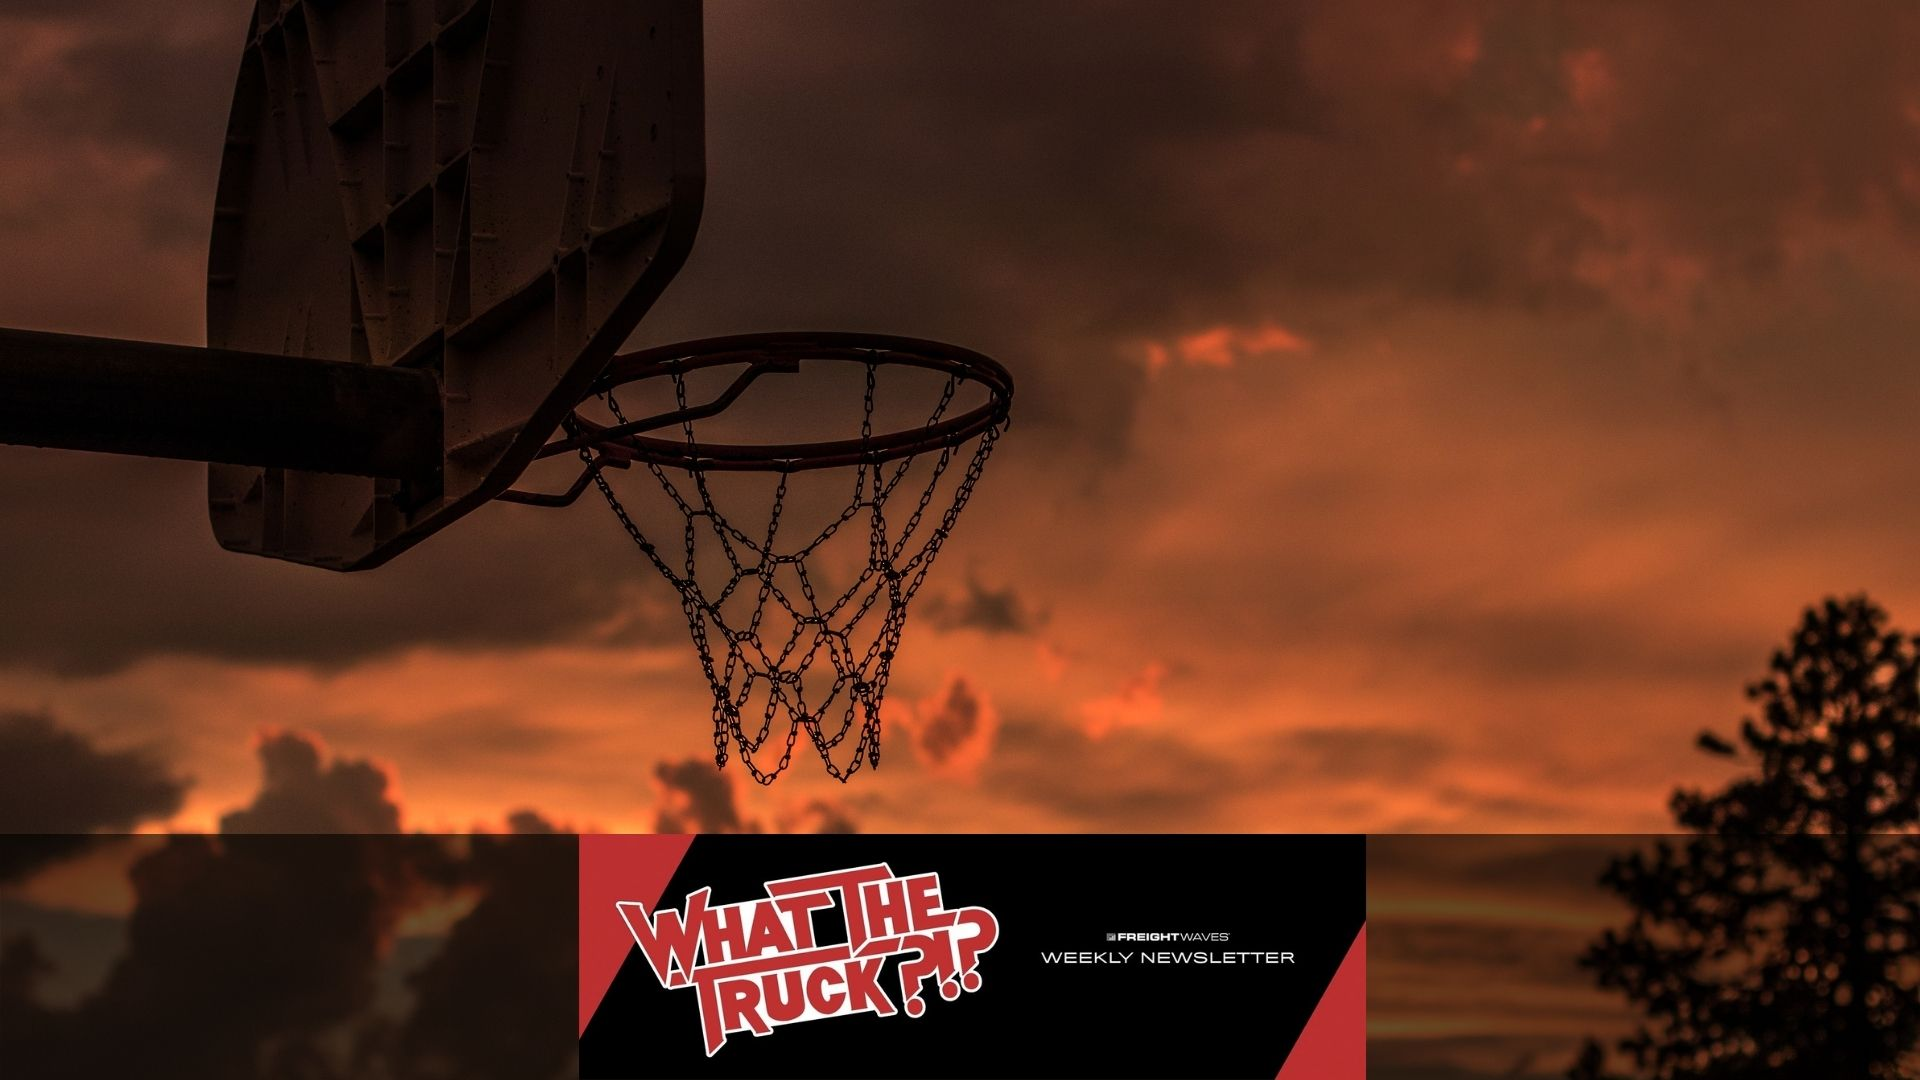 Kyrie Irving and Fleeting assist drivers on the rebound – WTT [newsletter]